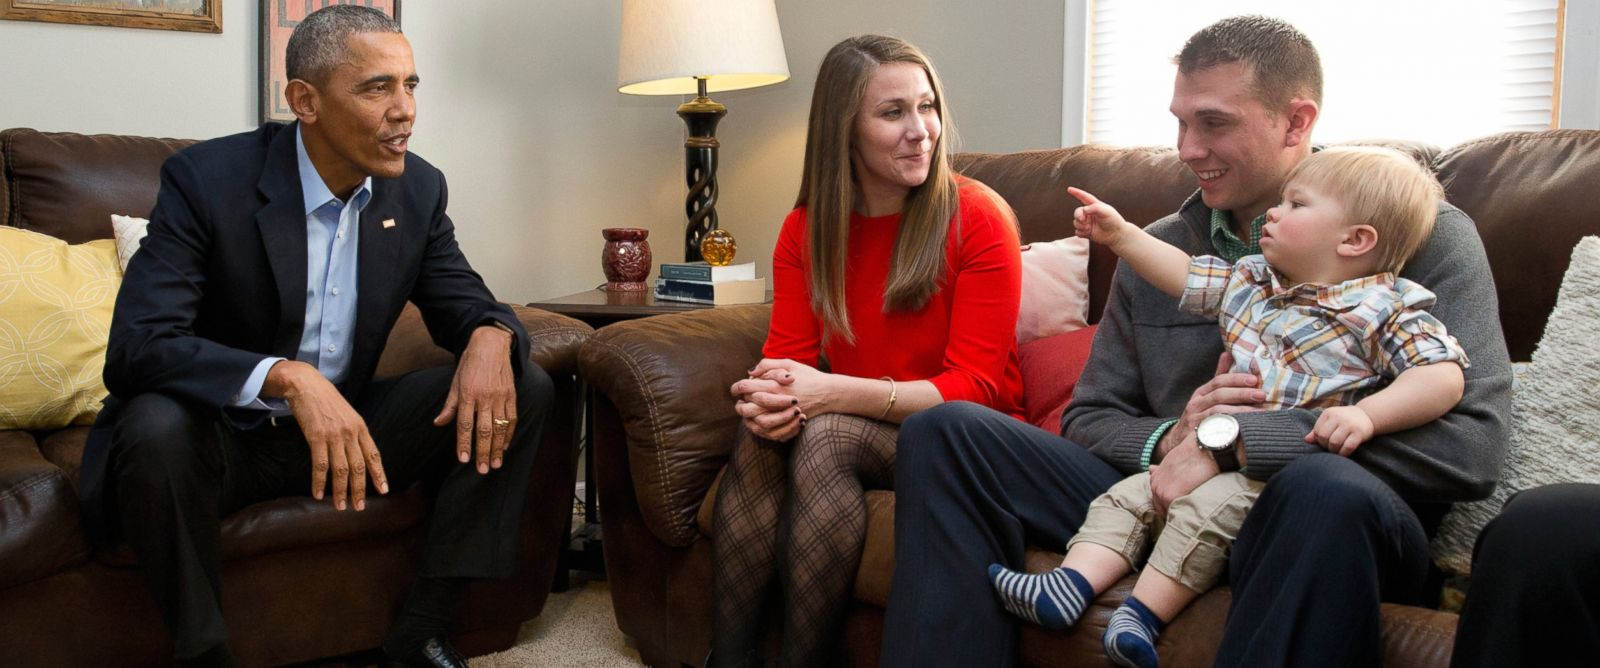 PHOTO: President Barack Obama visits with Lisa Martin, who wrote the president, her husband Jeff Martin and their son Cooper in their living room, in Omaha, Neb., Jan. 13, 2016.